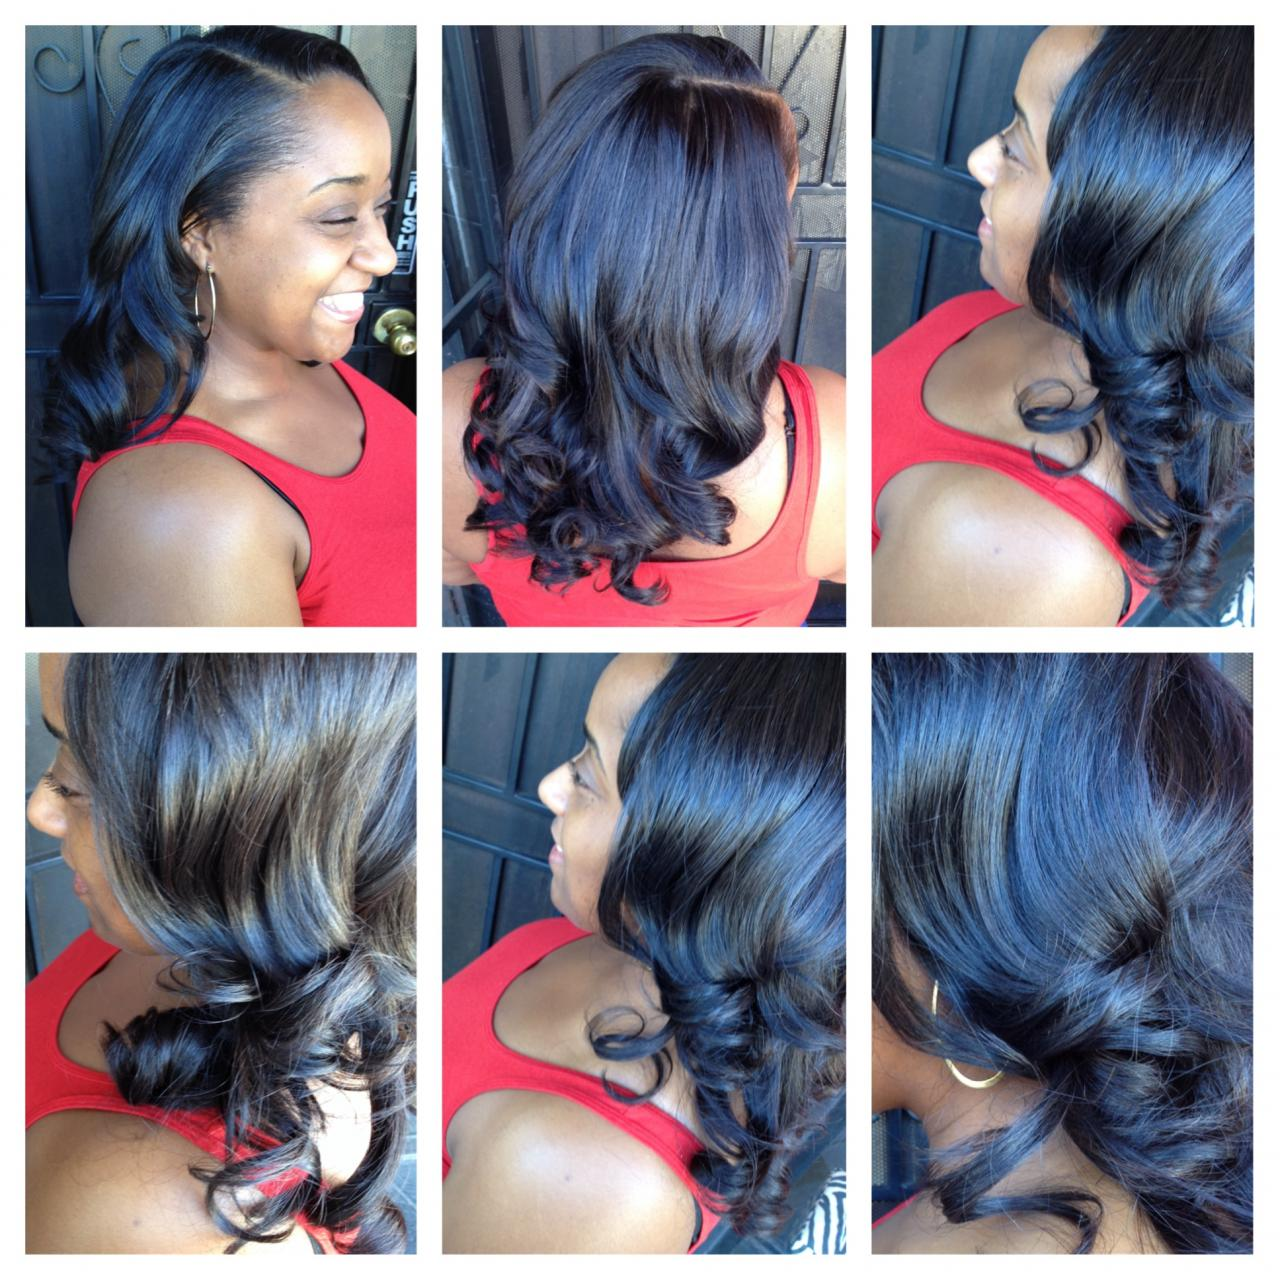 Women Of Color Salon Hair Extensions By Lesa Marie